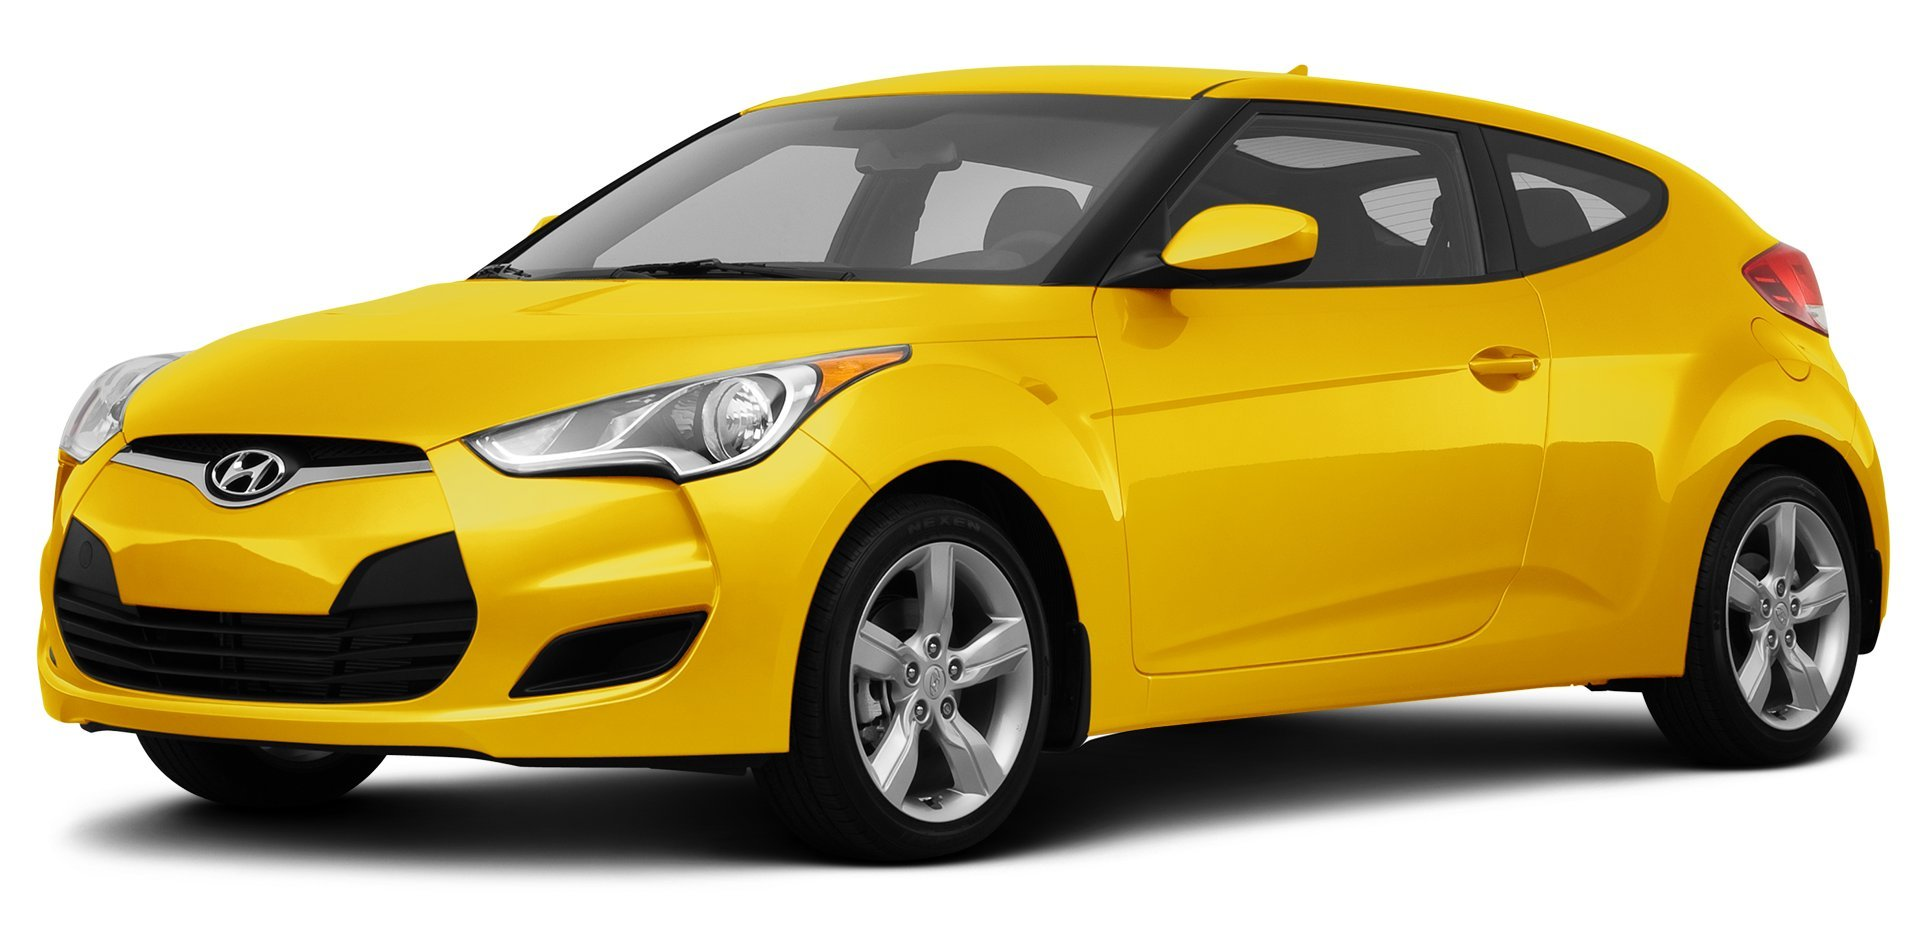 Image result for 2013 Veloster